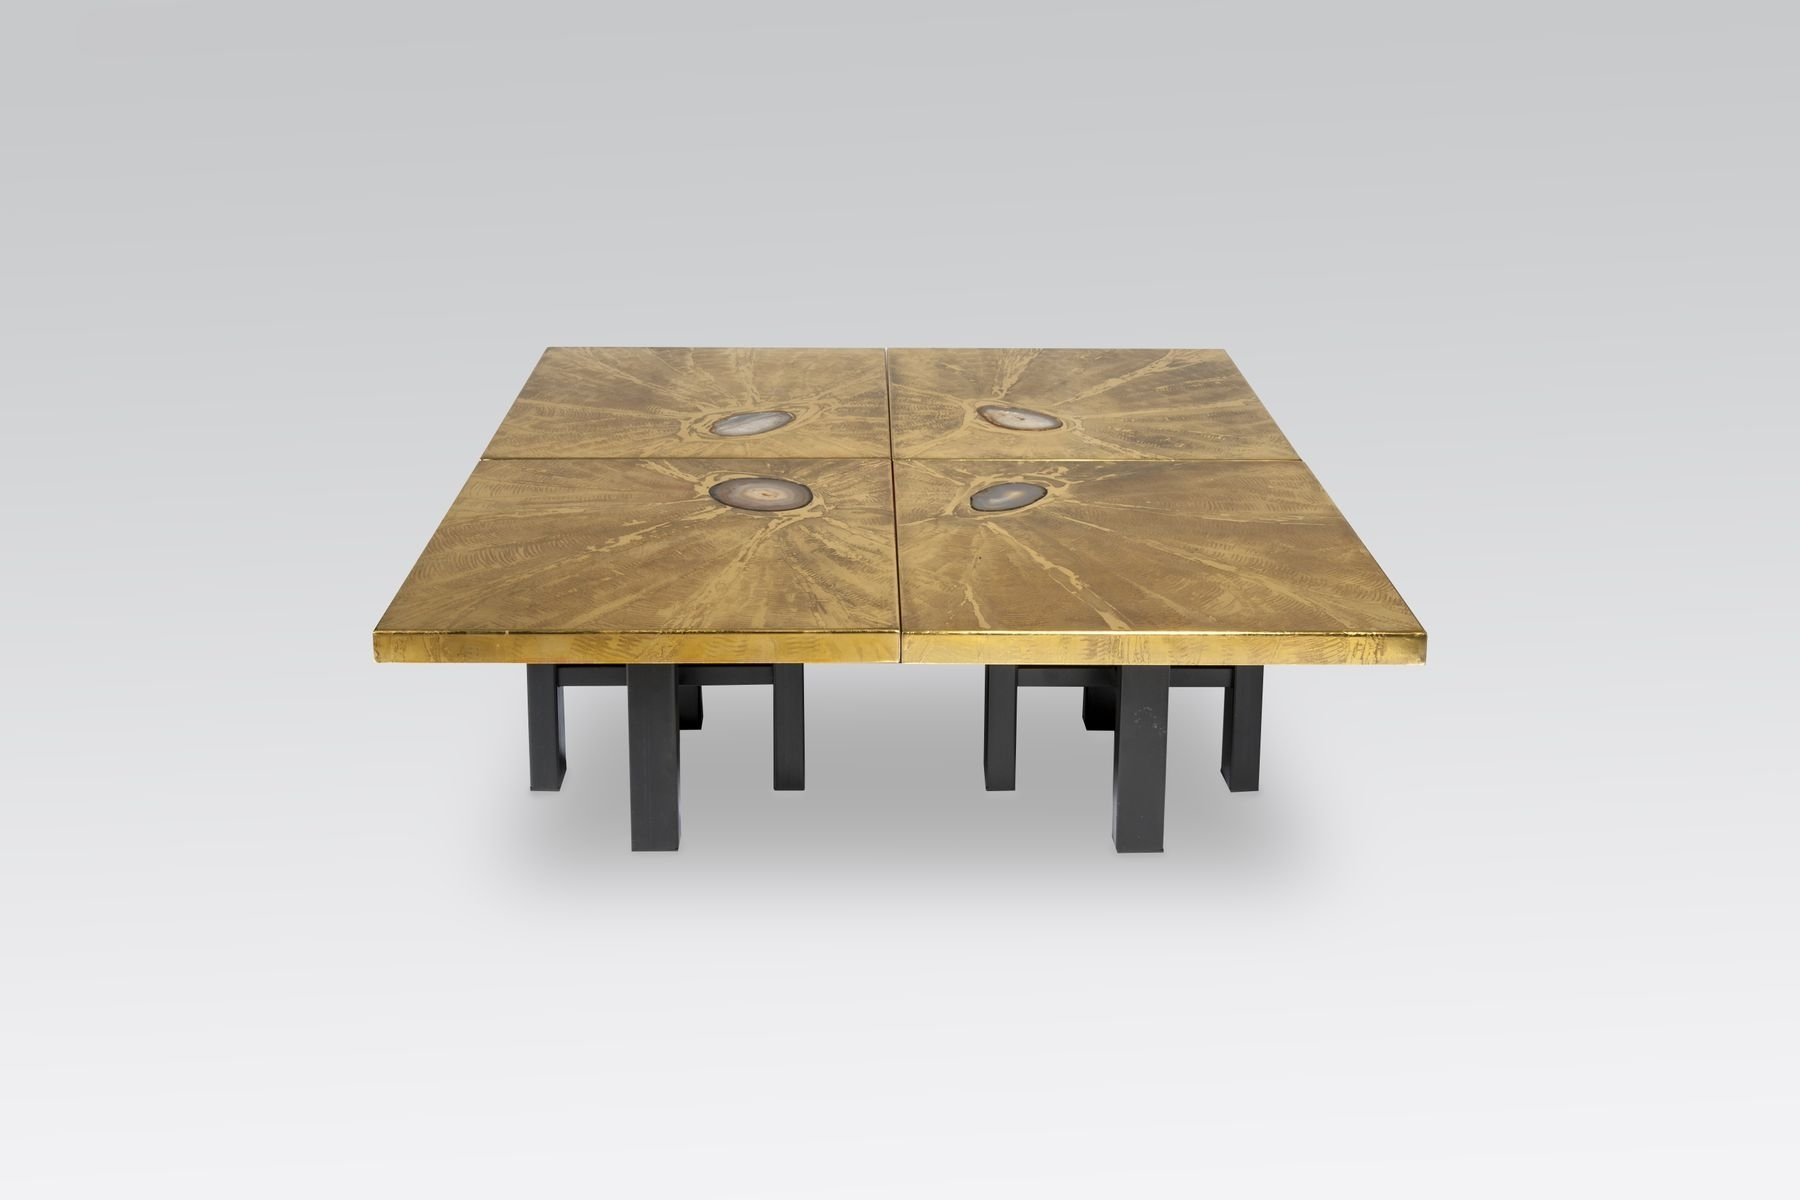 Modular Coffee Tables With Brass Engravings & Agate Inlayslova for Modular Coffee Tables (Image 19 of 30)